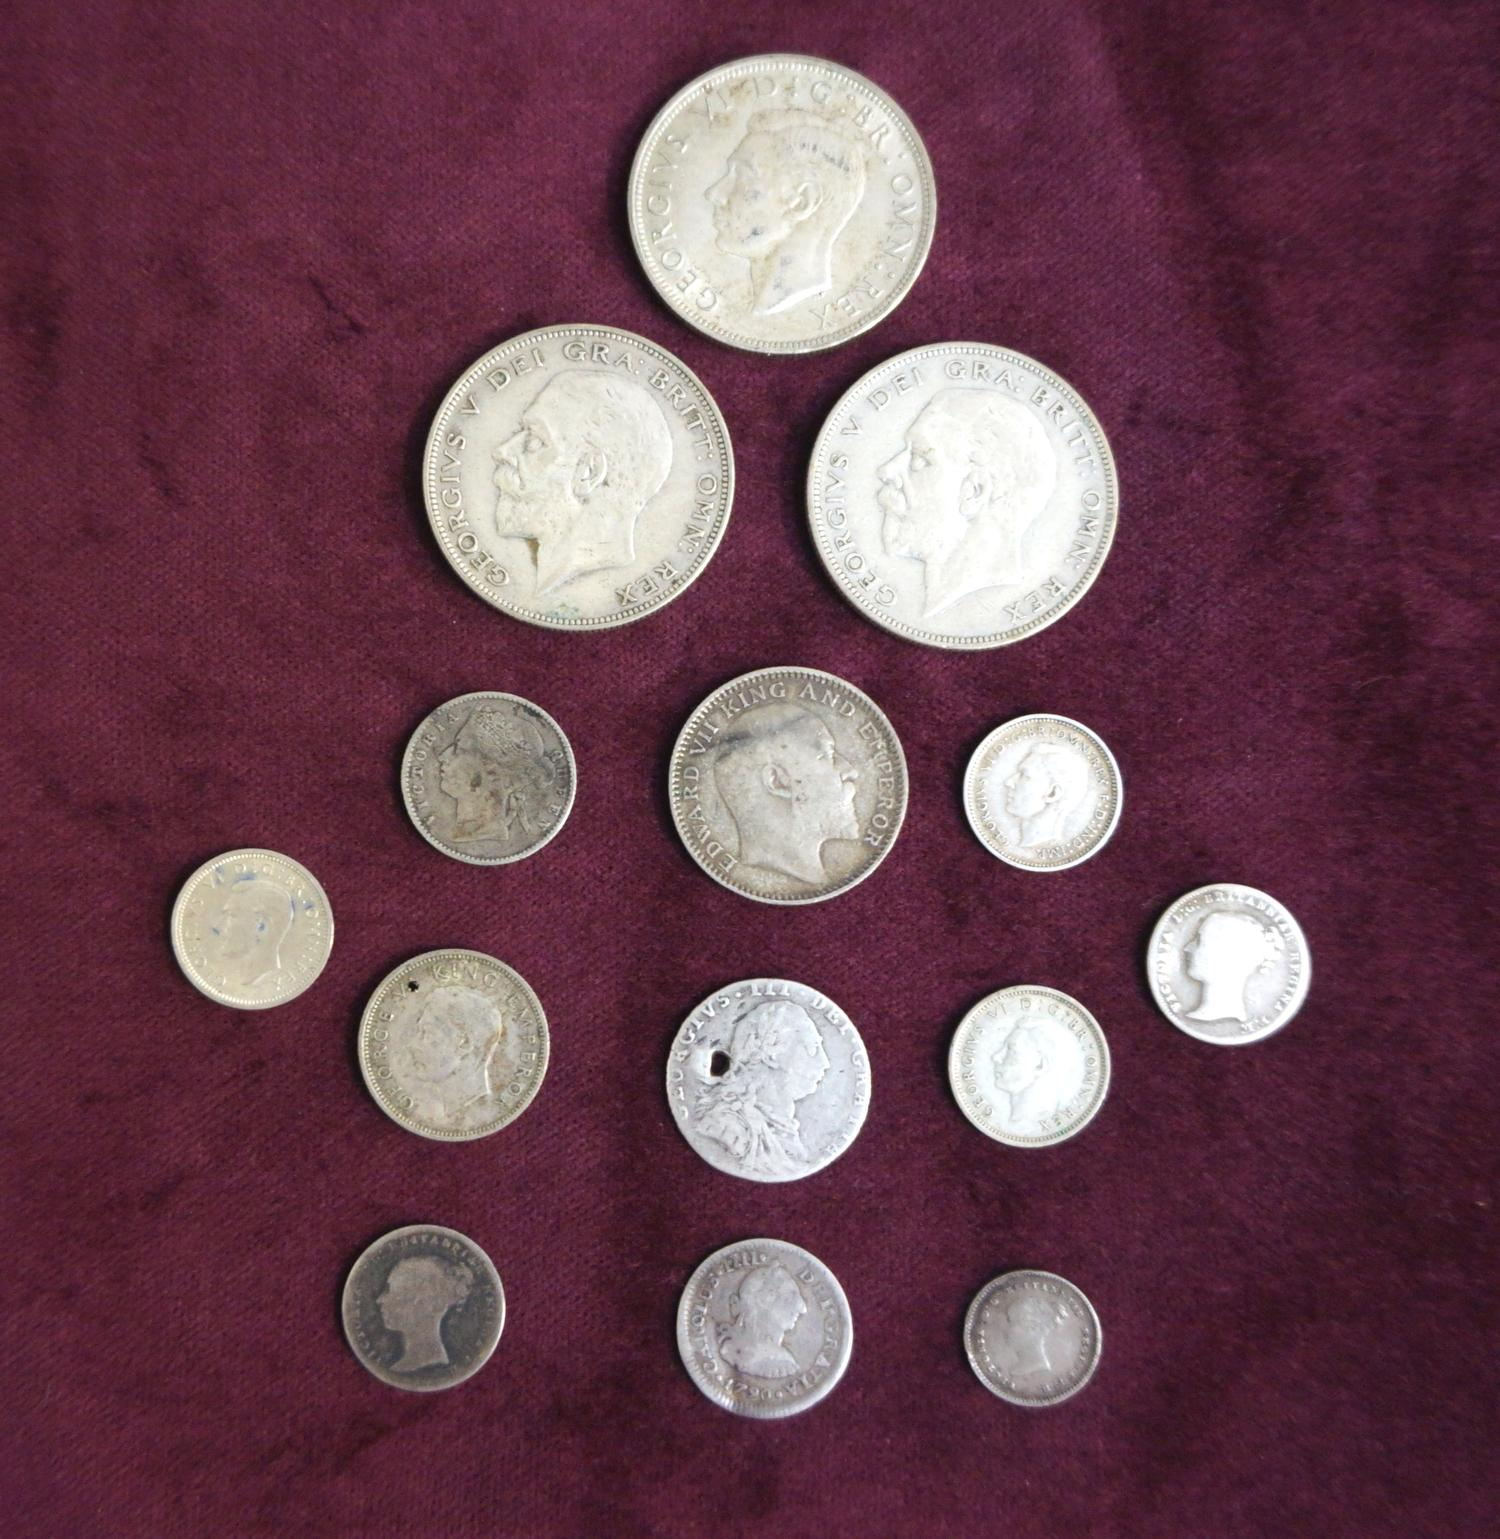 Lot 364 - SELECTION OF BRITISH SILVER COINS PRE-1946 some pre-1920, including 1936 and 1942 crowns, a George